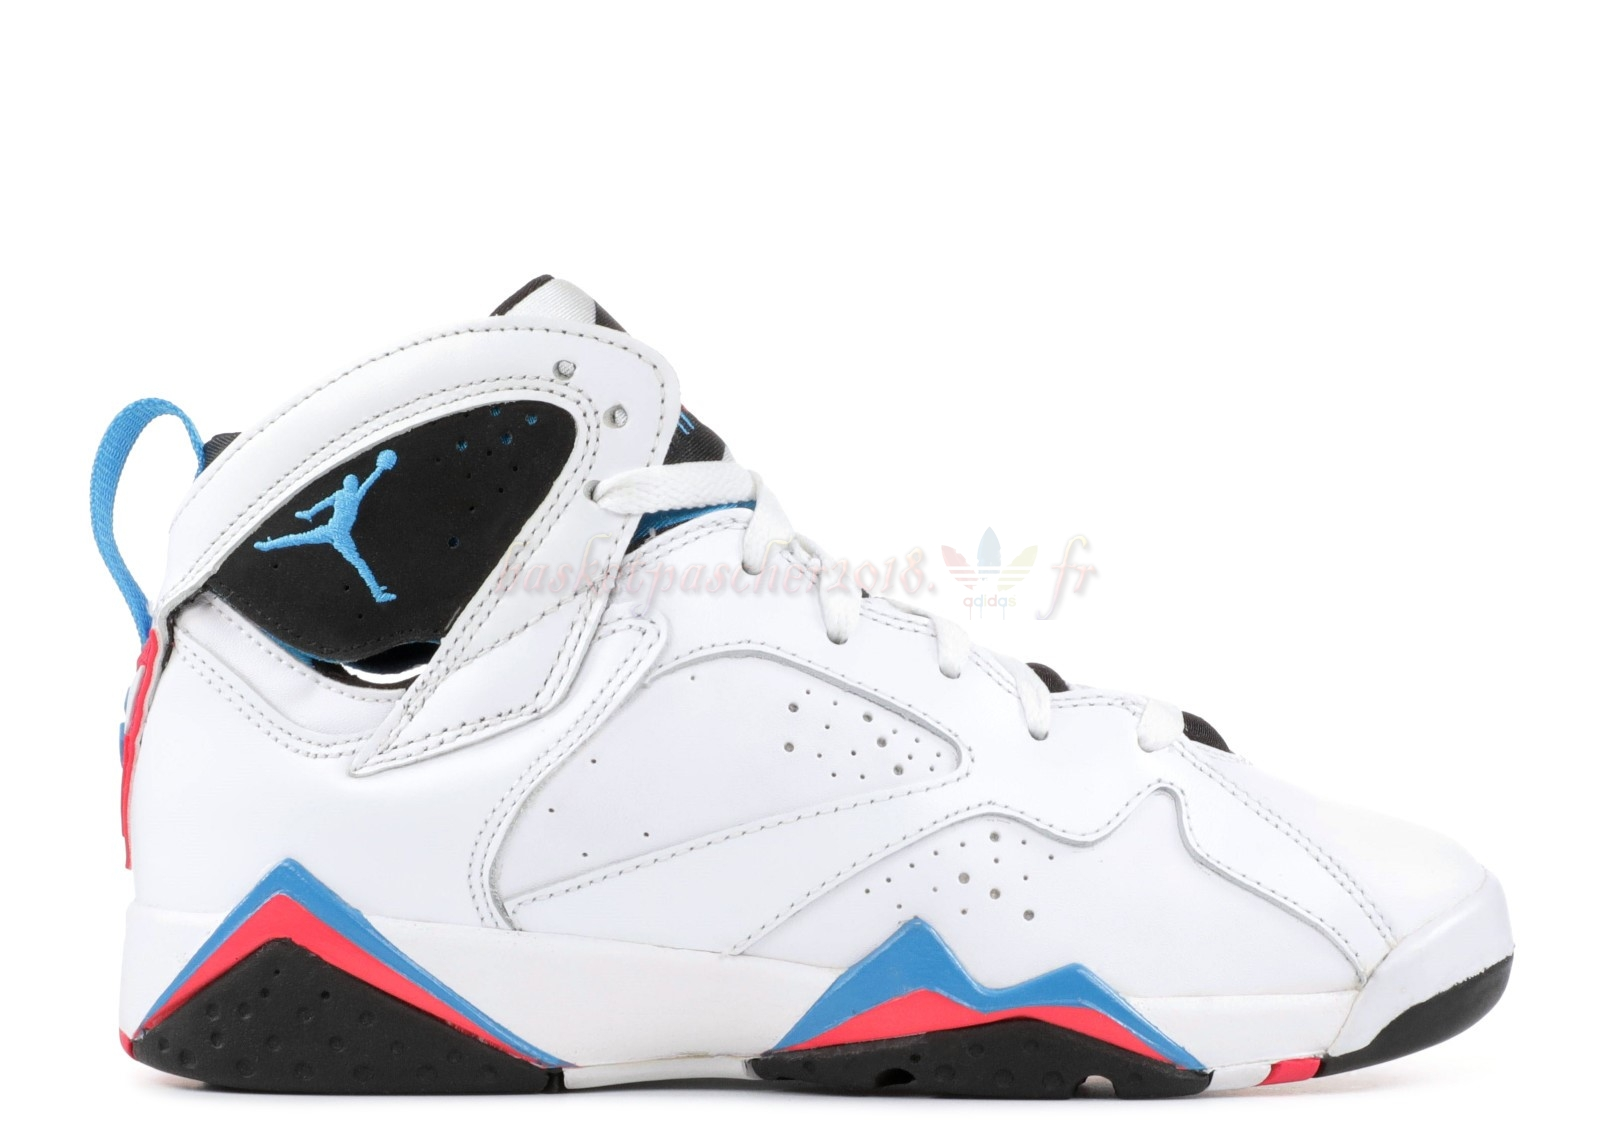 pretty nice 2c757 ae906 Vente Chaude Chaussures De Basketball Femme Air Jordan 7 Retro (Gs)